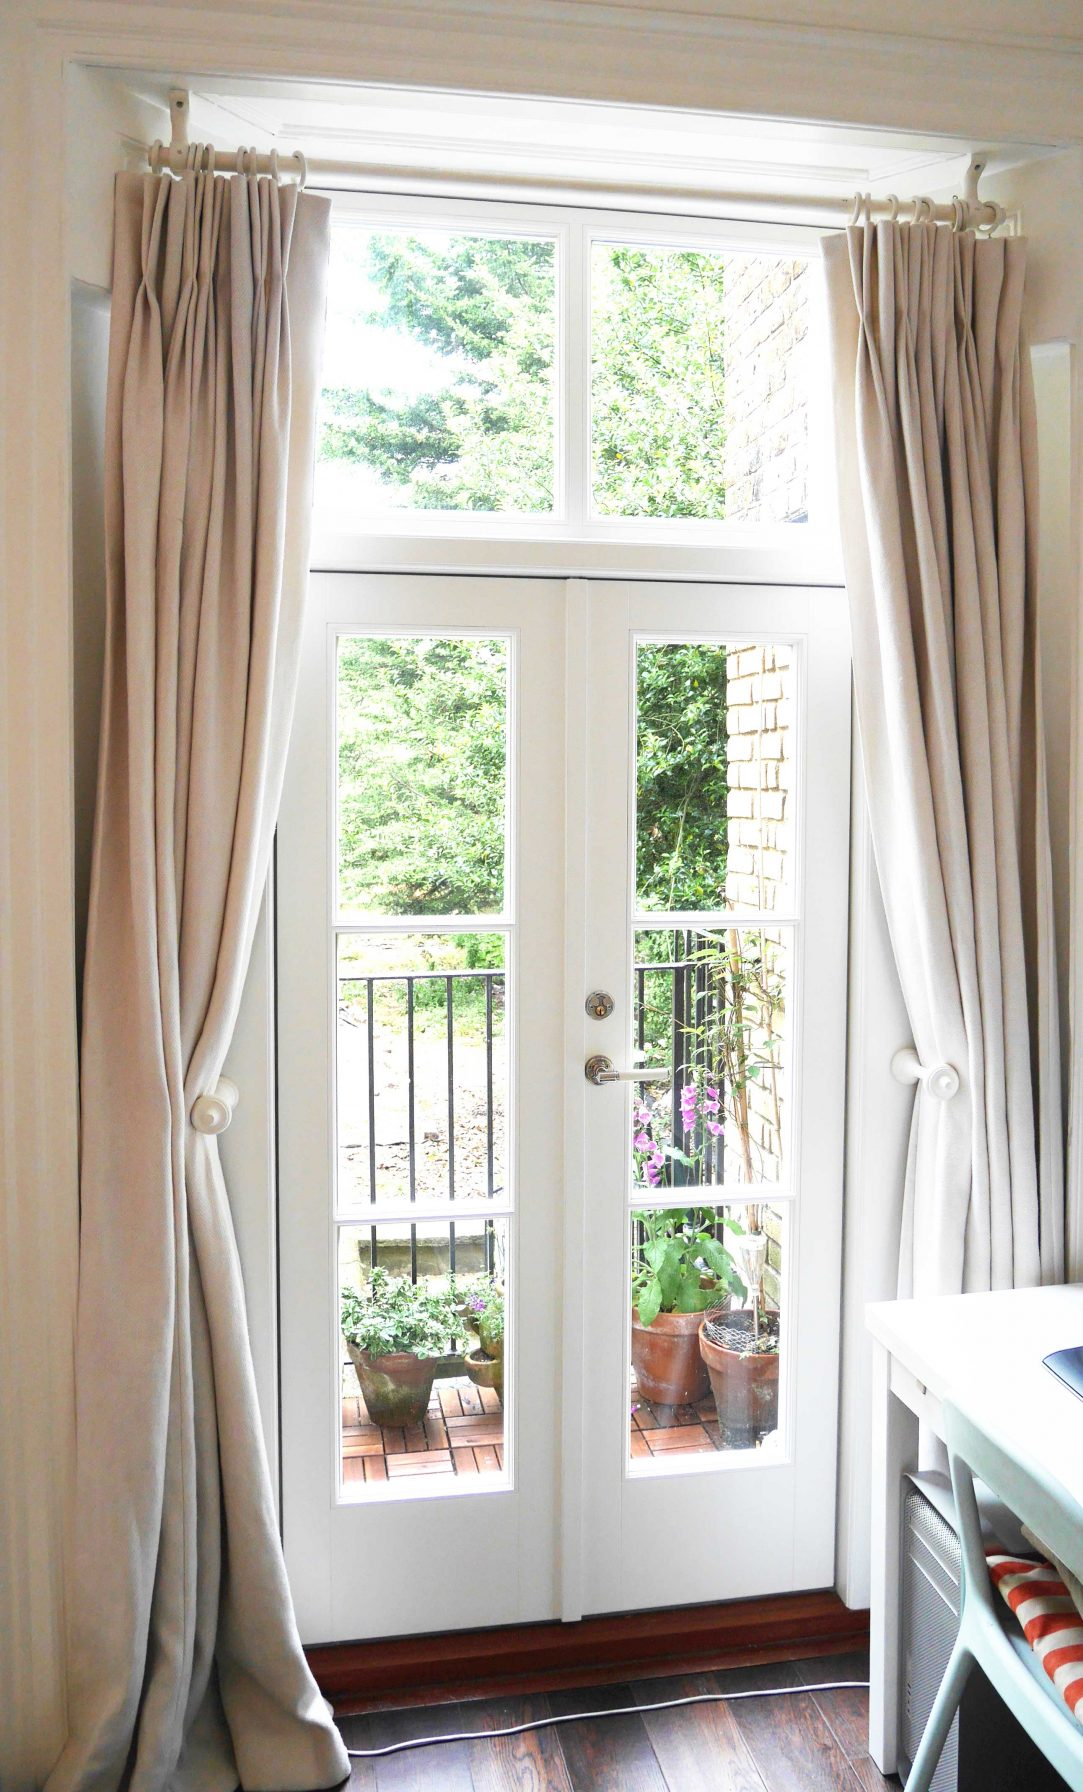 Gallery Image: Internal view of French Doors with Georgian bars and fixed fanlight